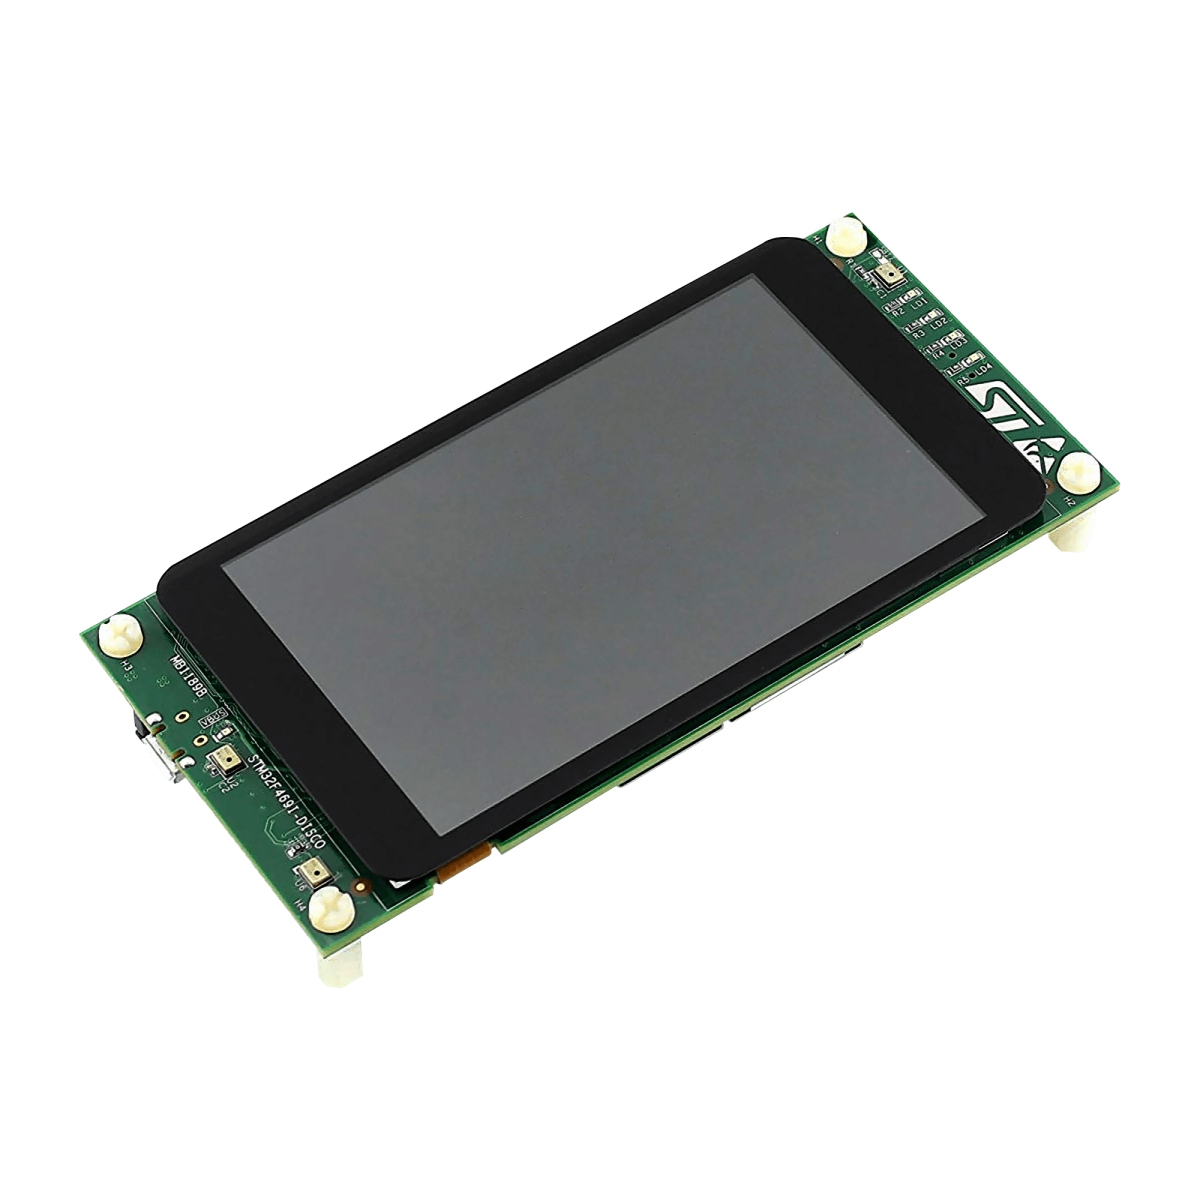 STM32F469 Discovery Kit | Touchscreen DIY Computer | Samm Market